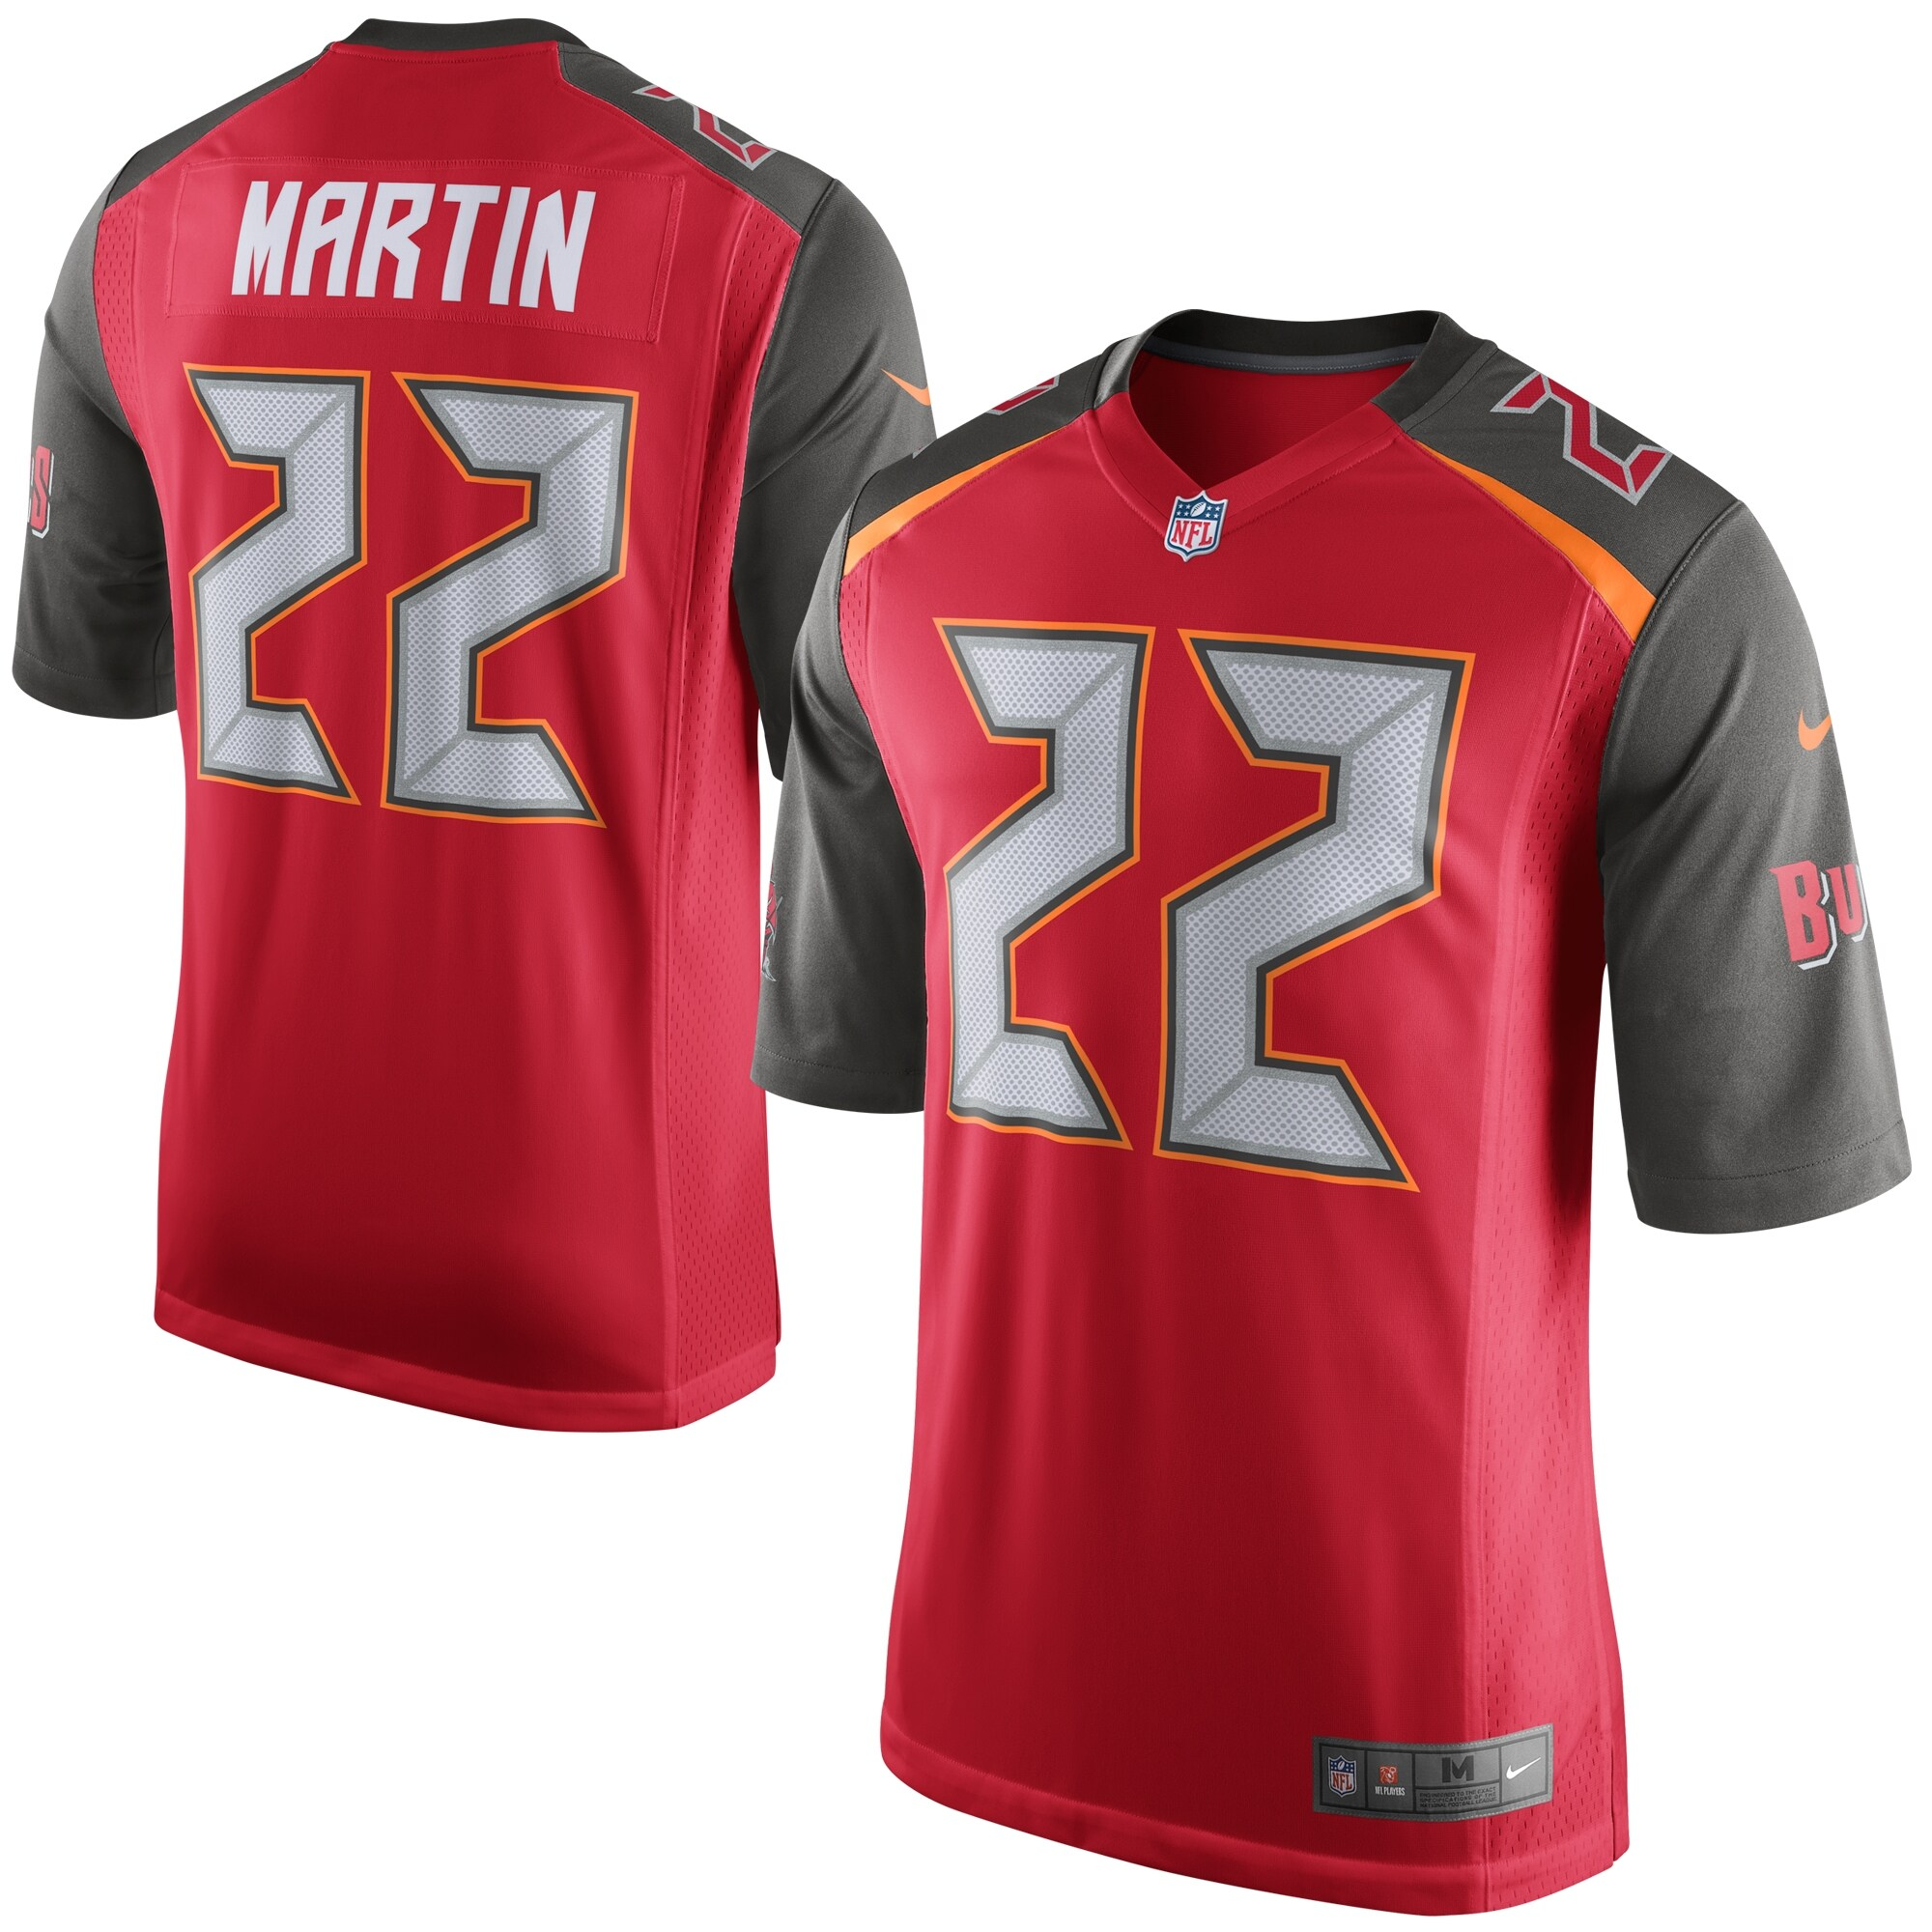 Doug Martin Tampa Bay Buccaneers Nike Youth Team Color Game Jersey - Red